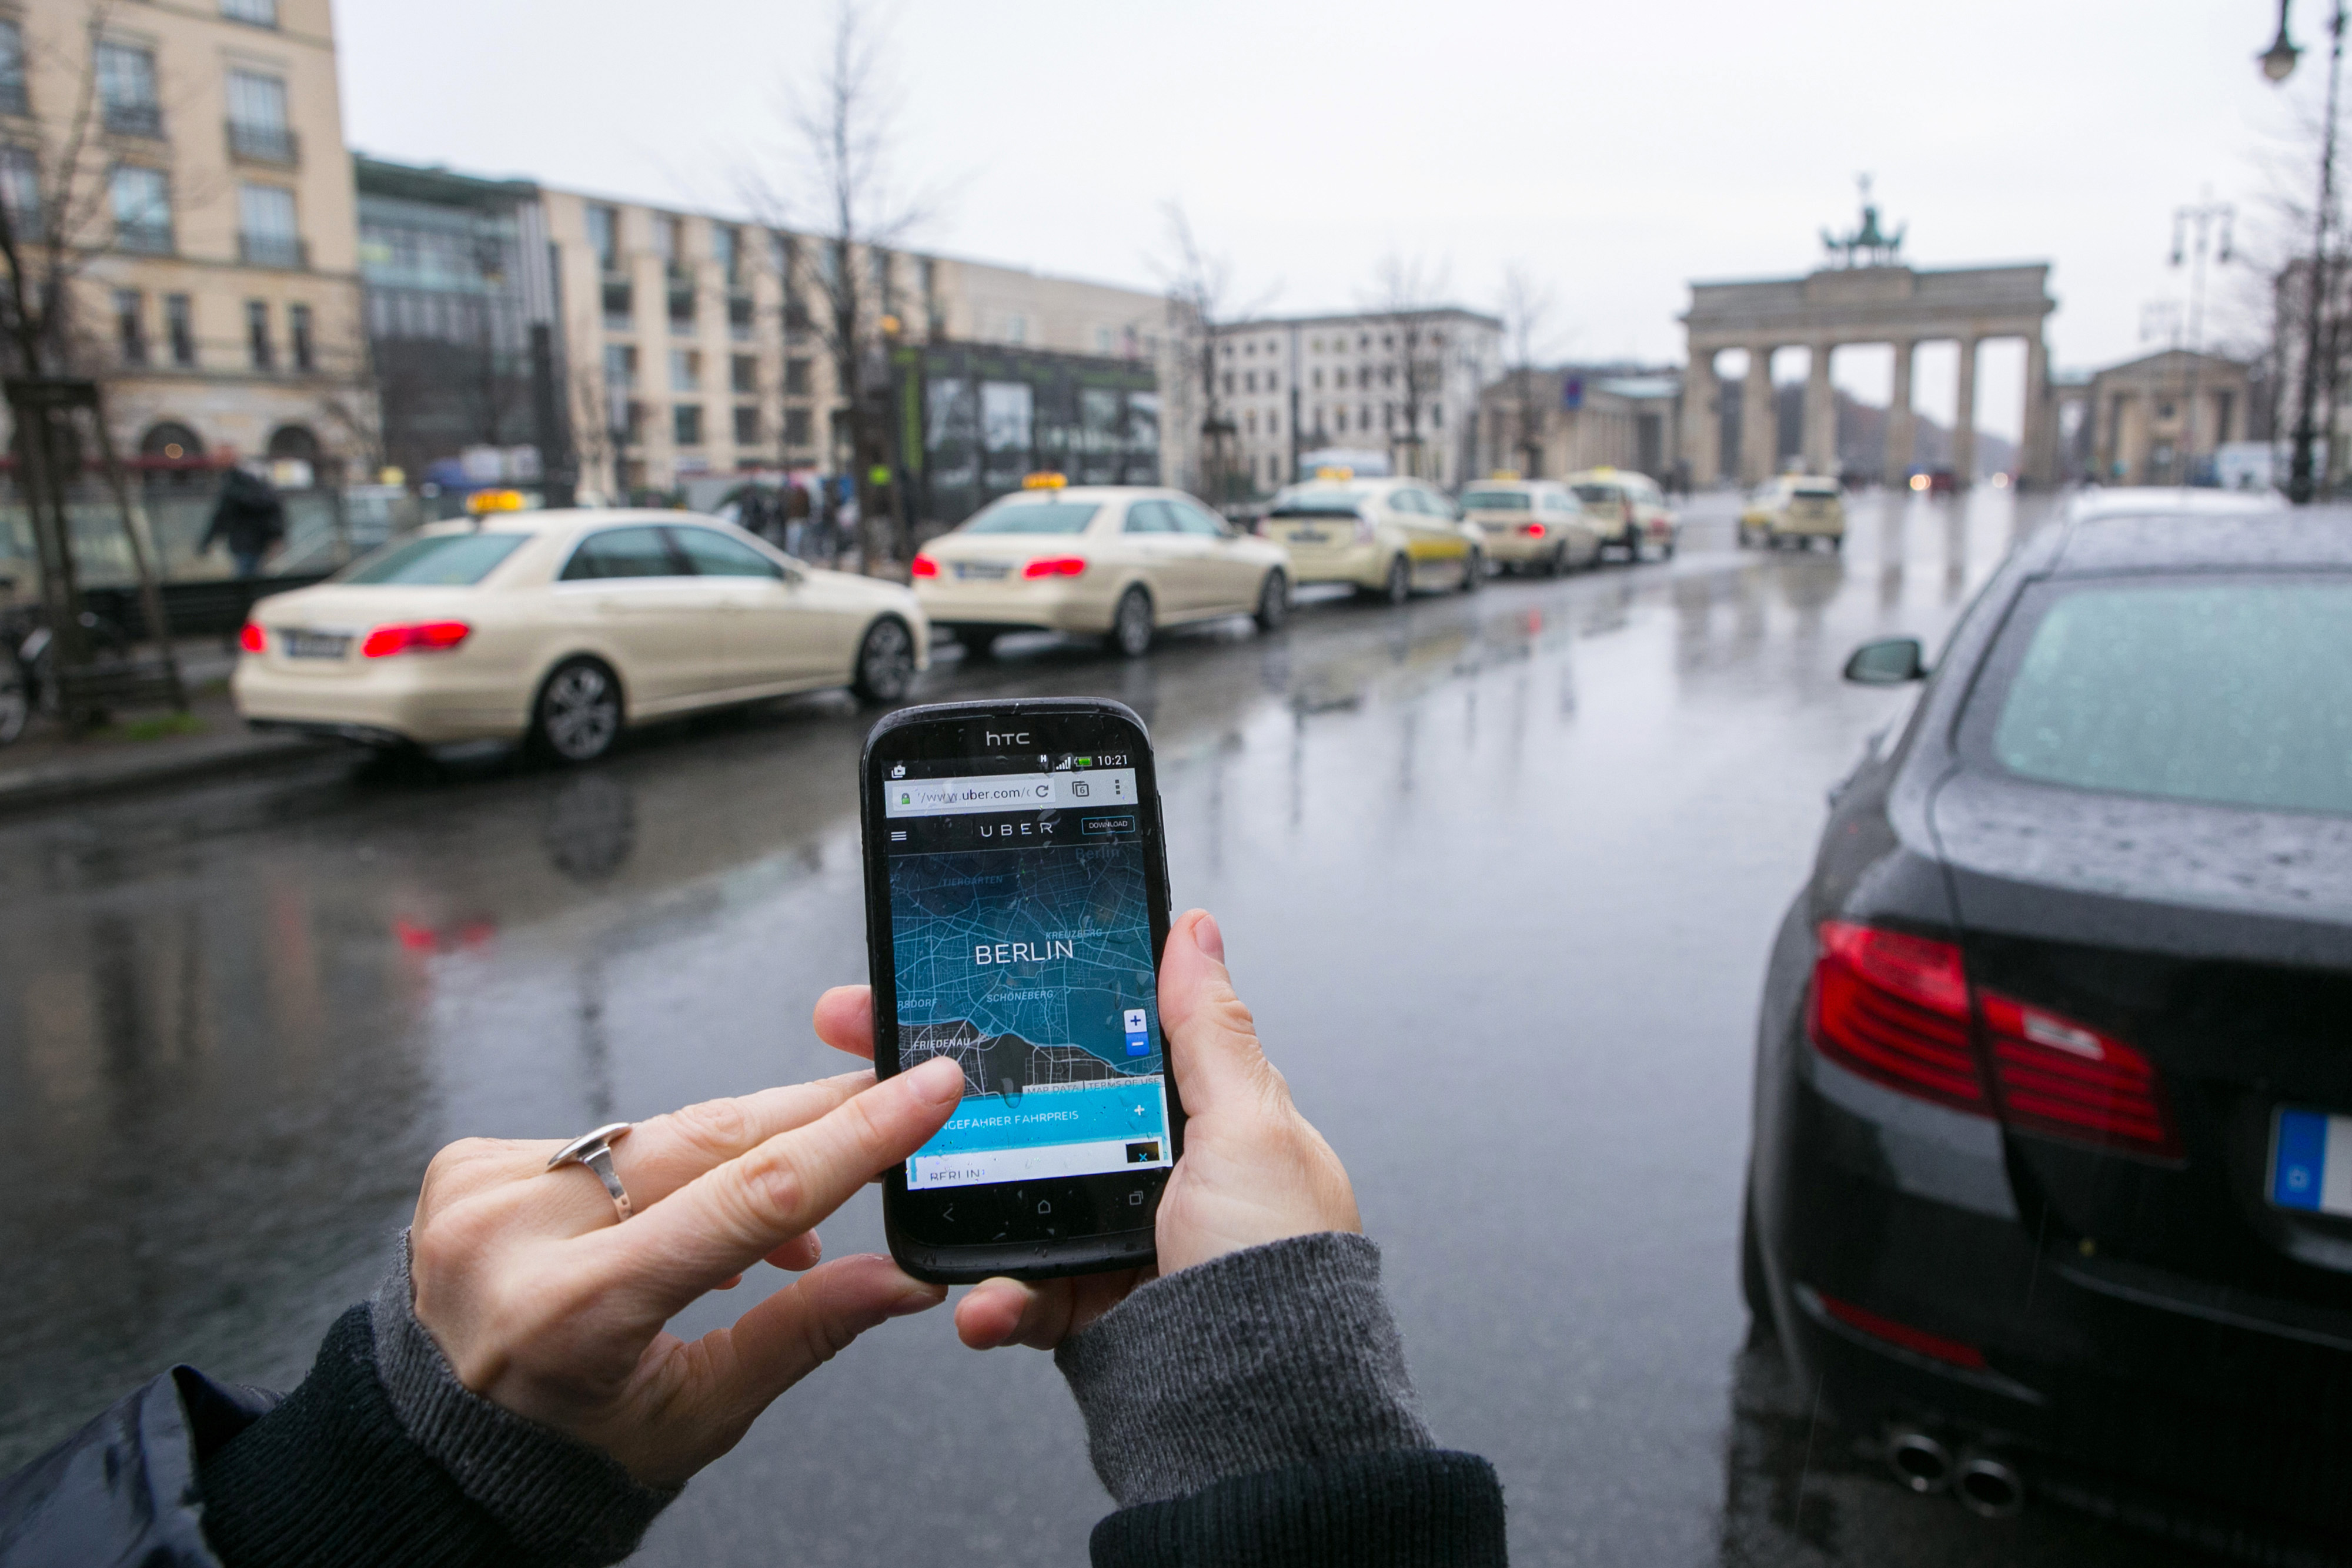 Uber is reducing the number of vehicles operating in two German cities during non-peak hours as the car-sharing service struggles with legal challenges.